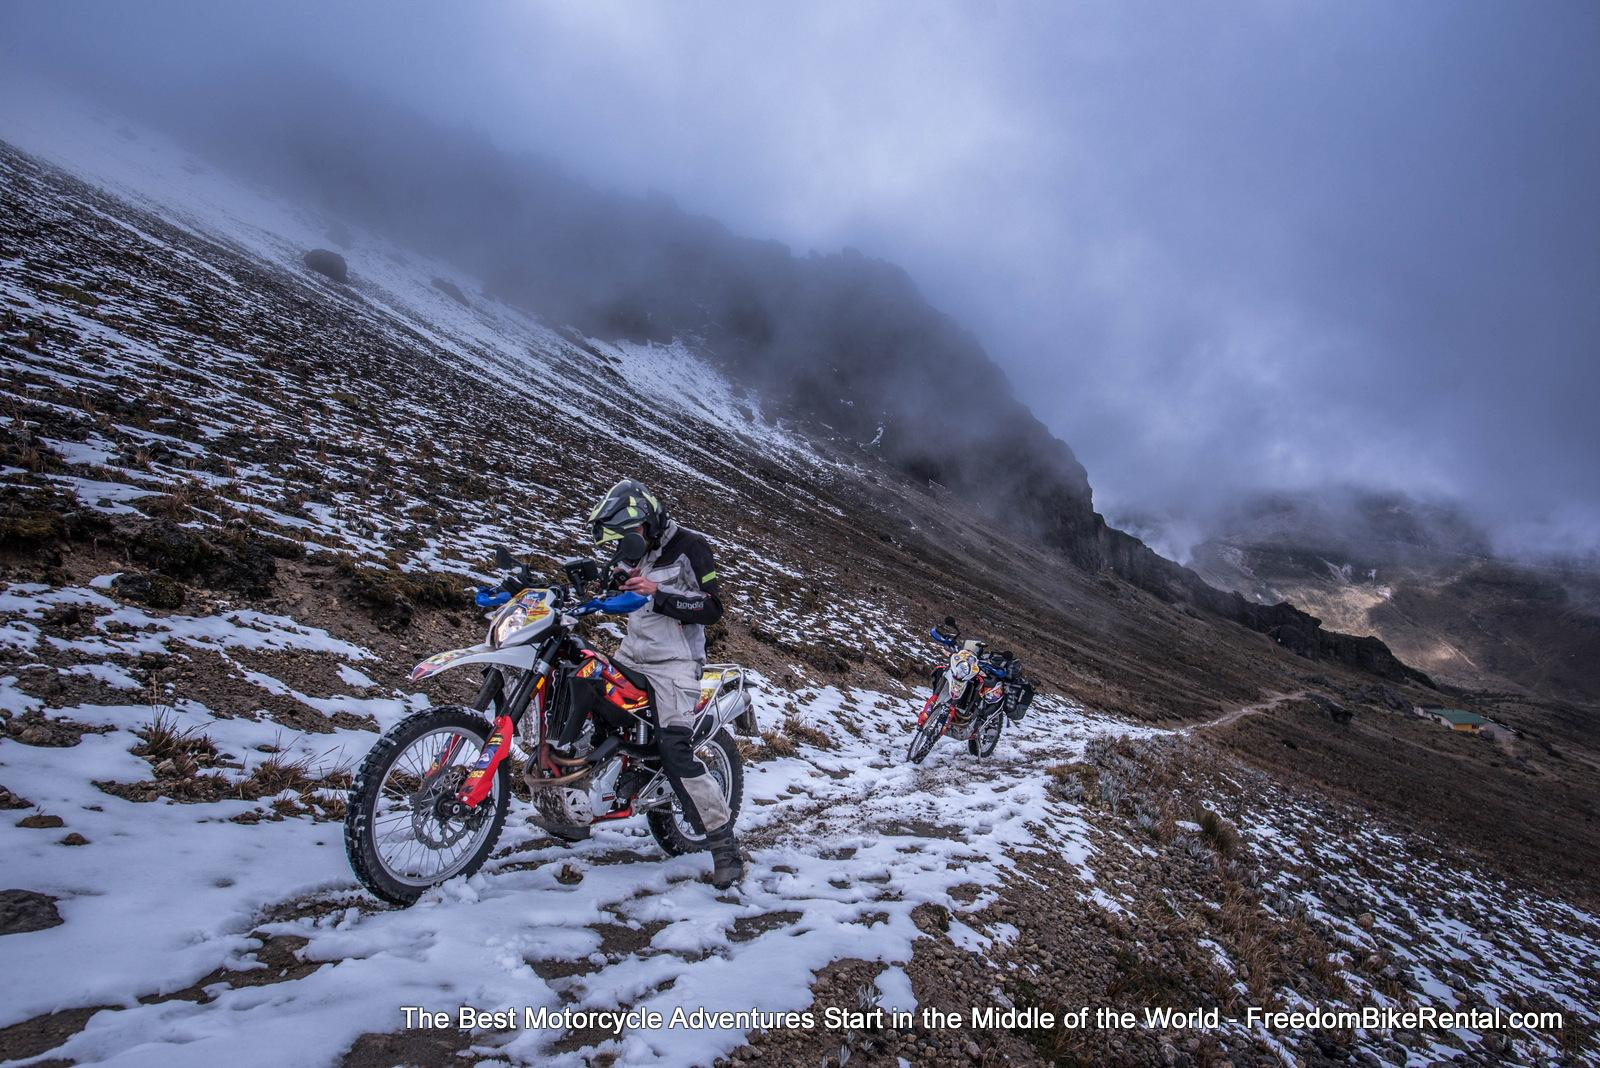 15000 feet on Guagua Pichincha Ecuador Motorcycle dual sport adventure tour